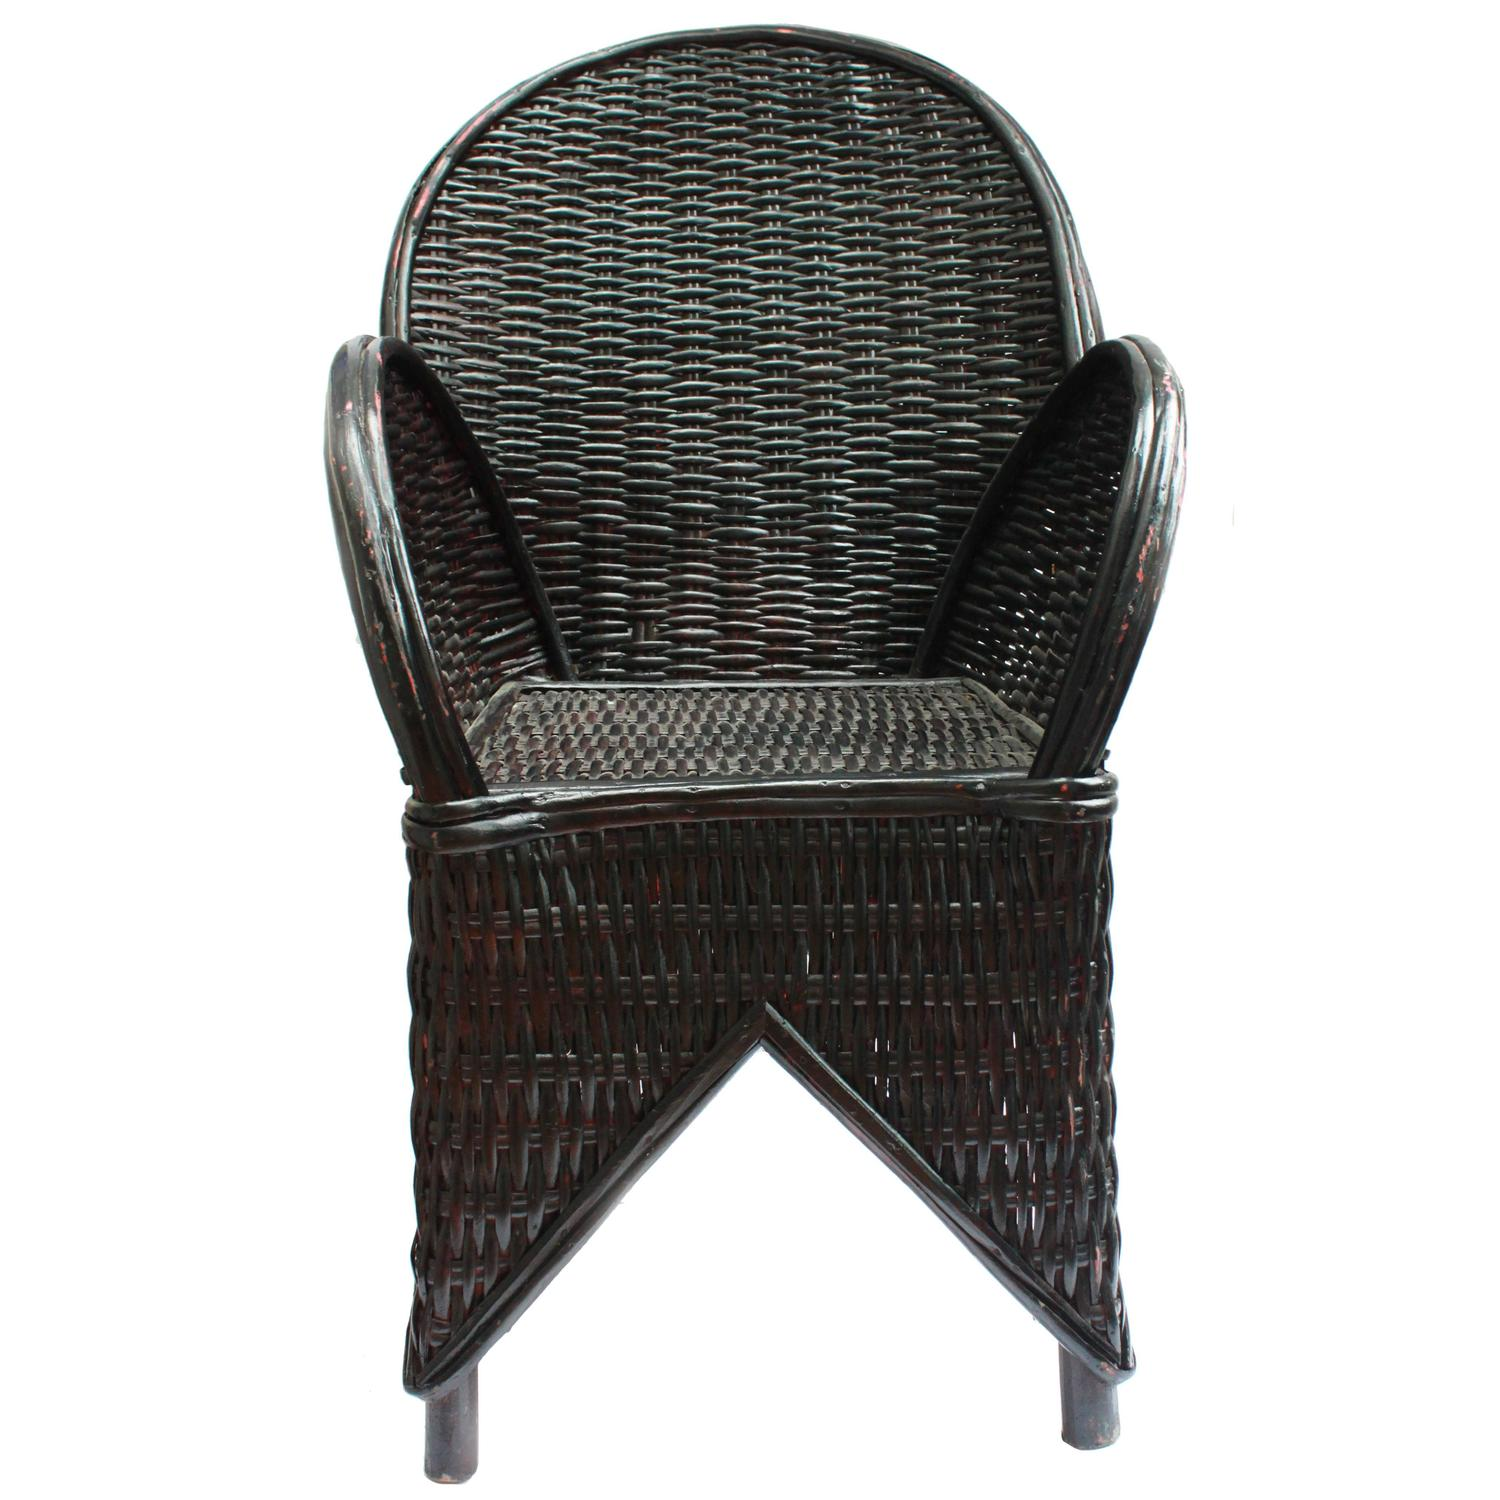 Black Chairs For Sale Black Wicker Chair Handmade In Morocco For Sale At 1stdibs